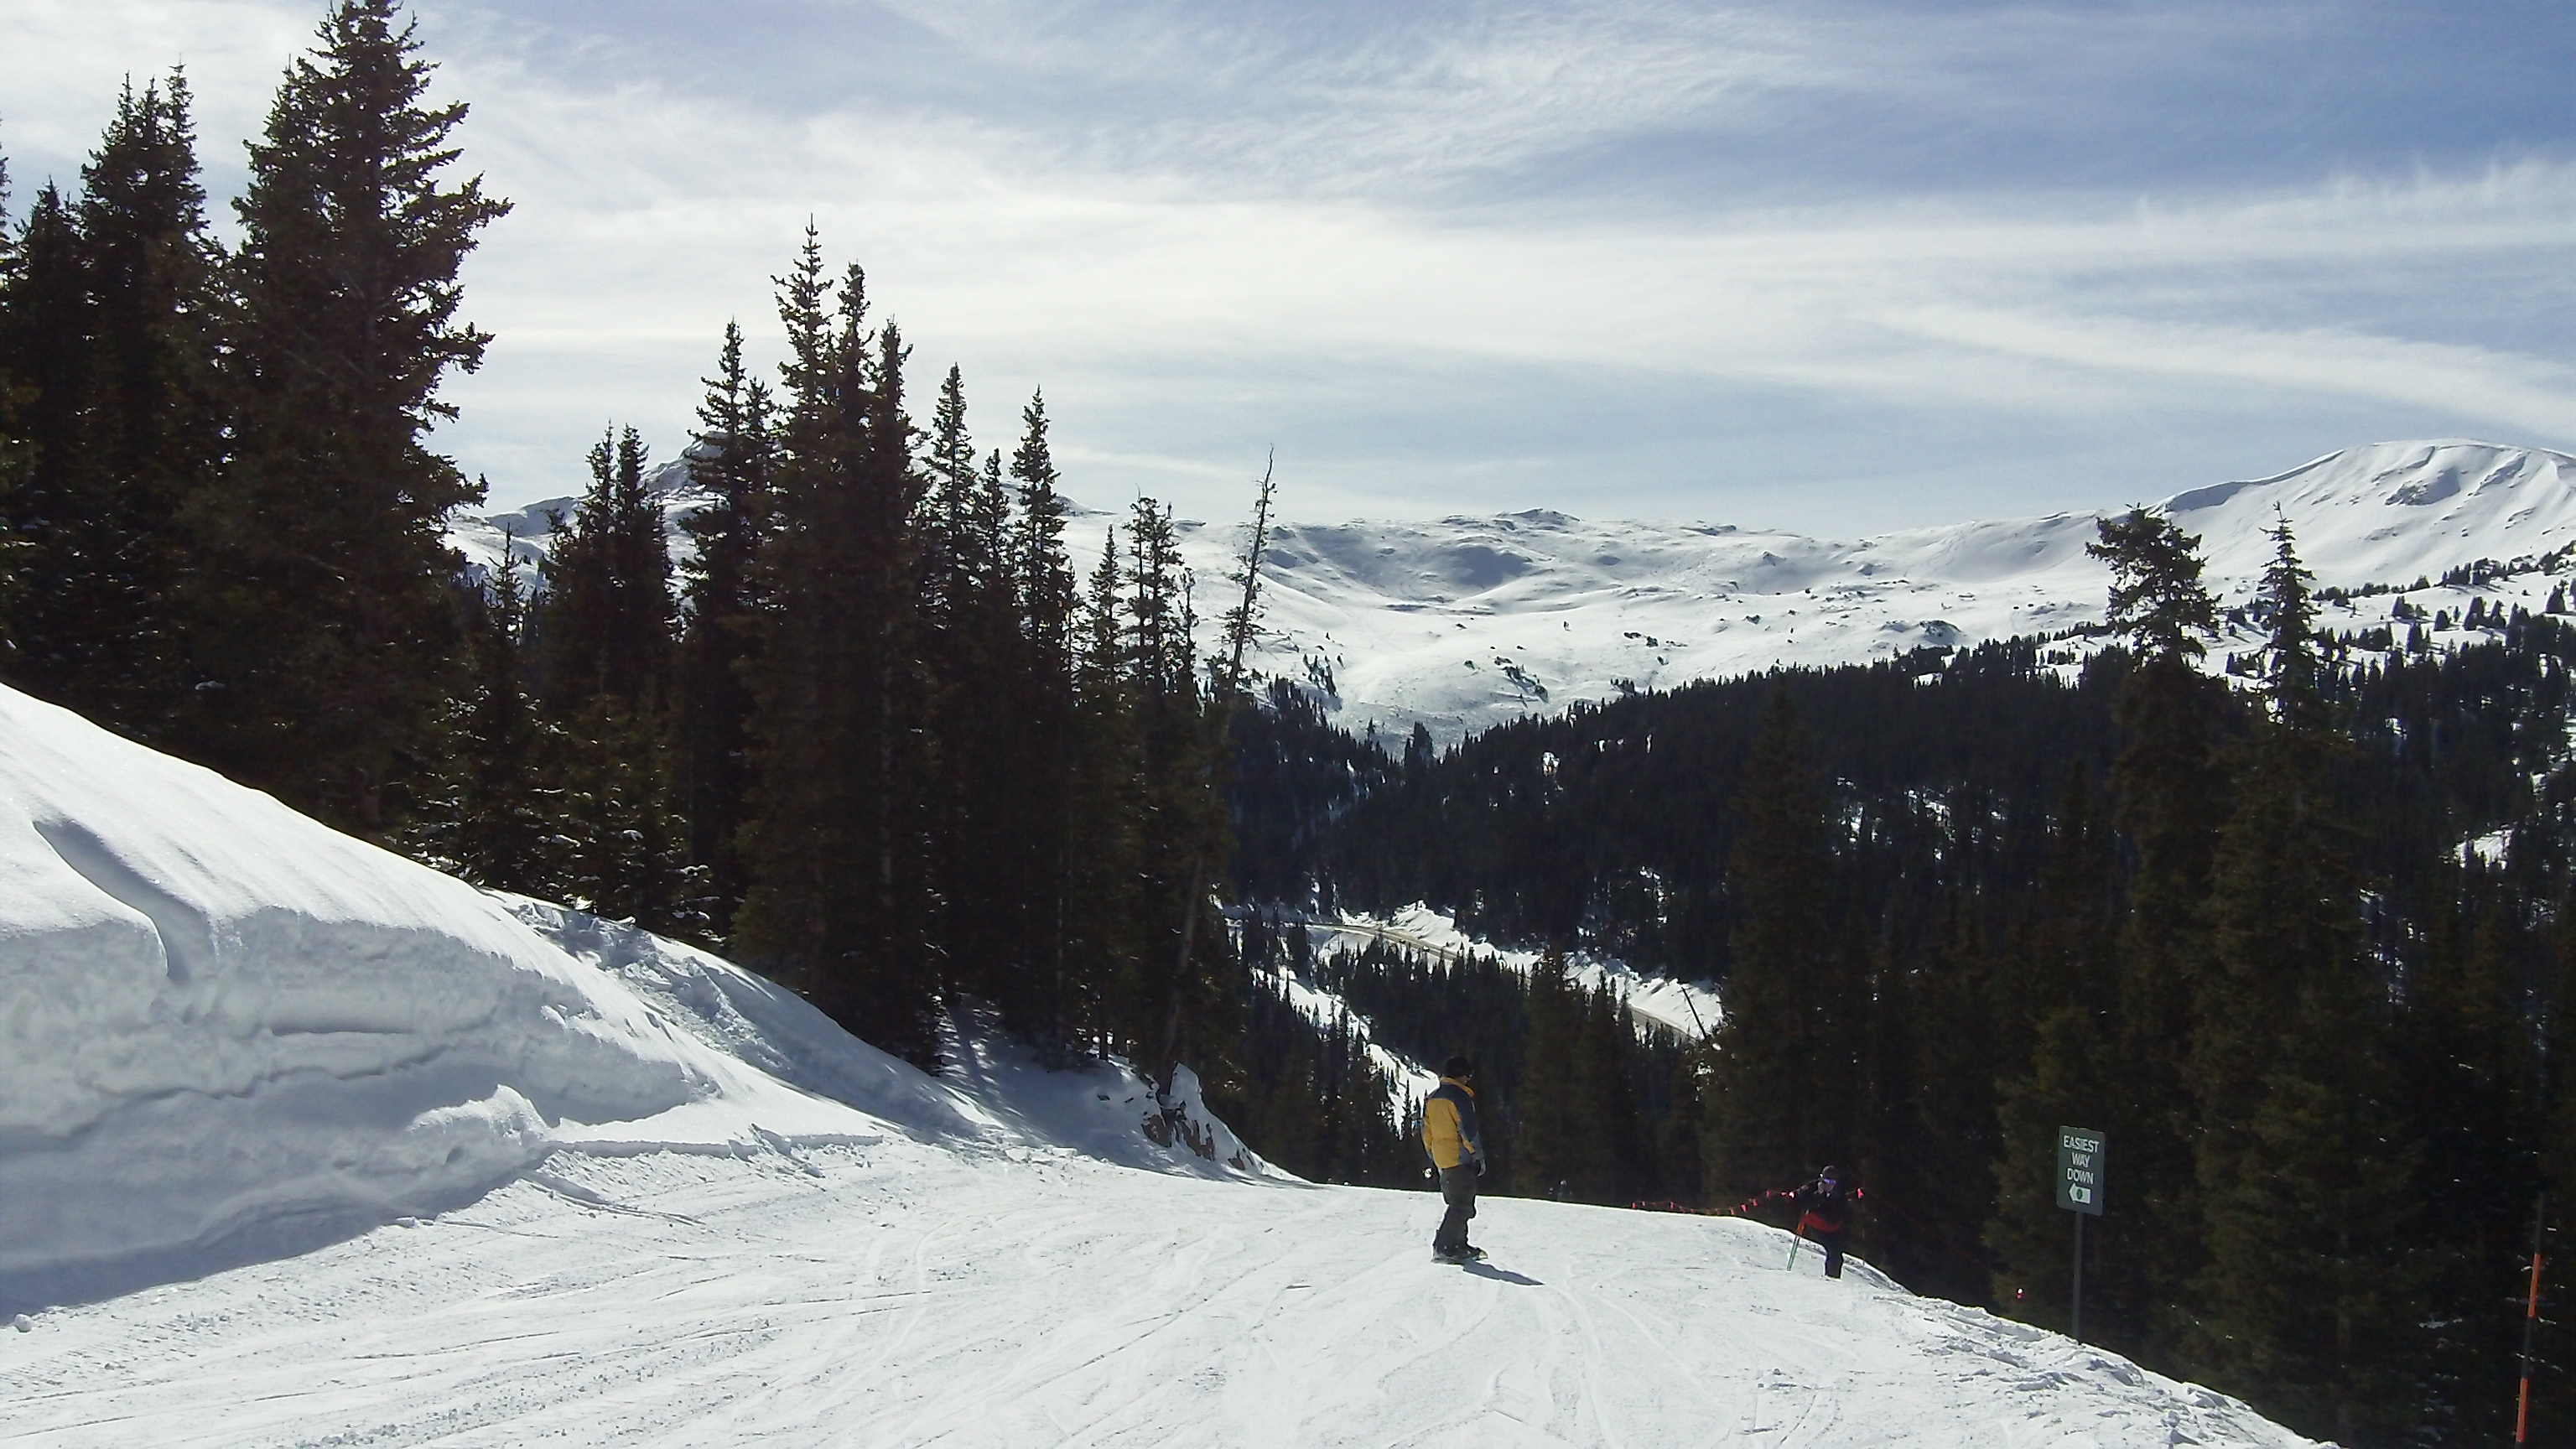 Photograph of the Zig Zag Ski Run